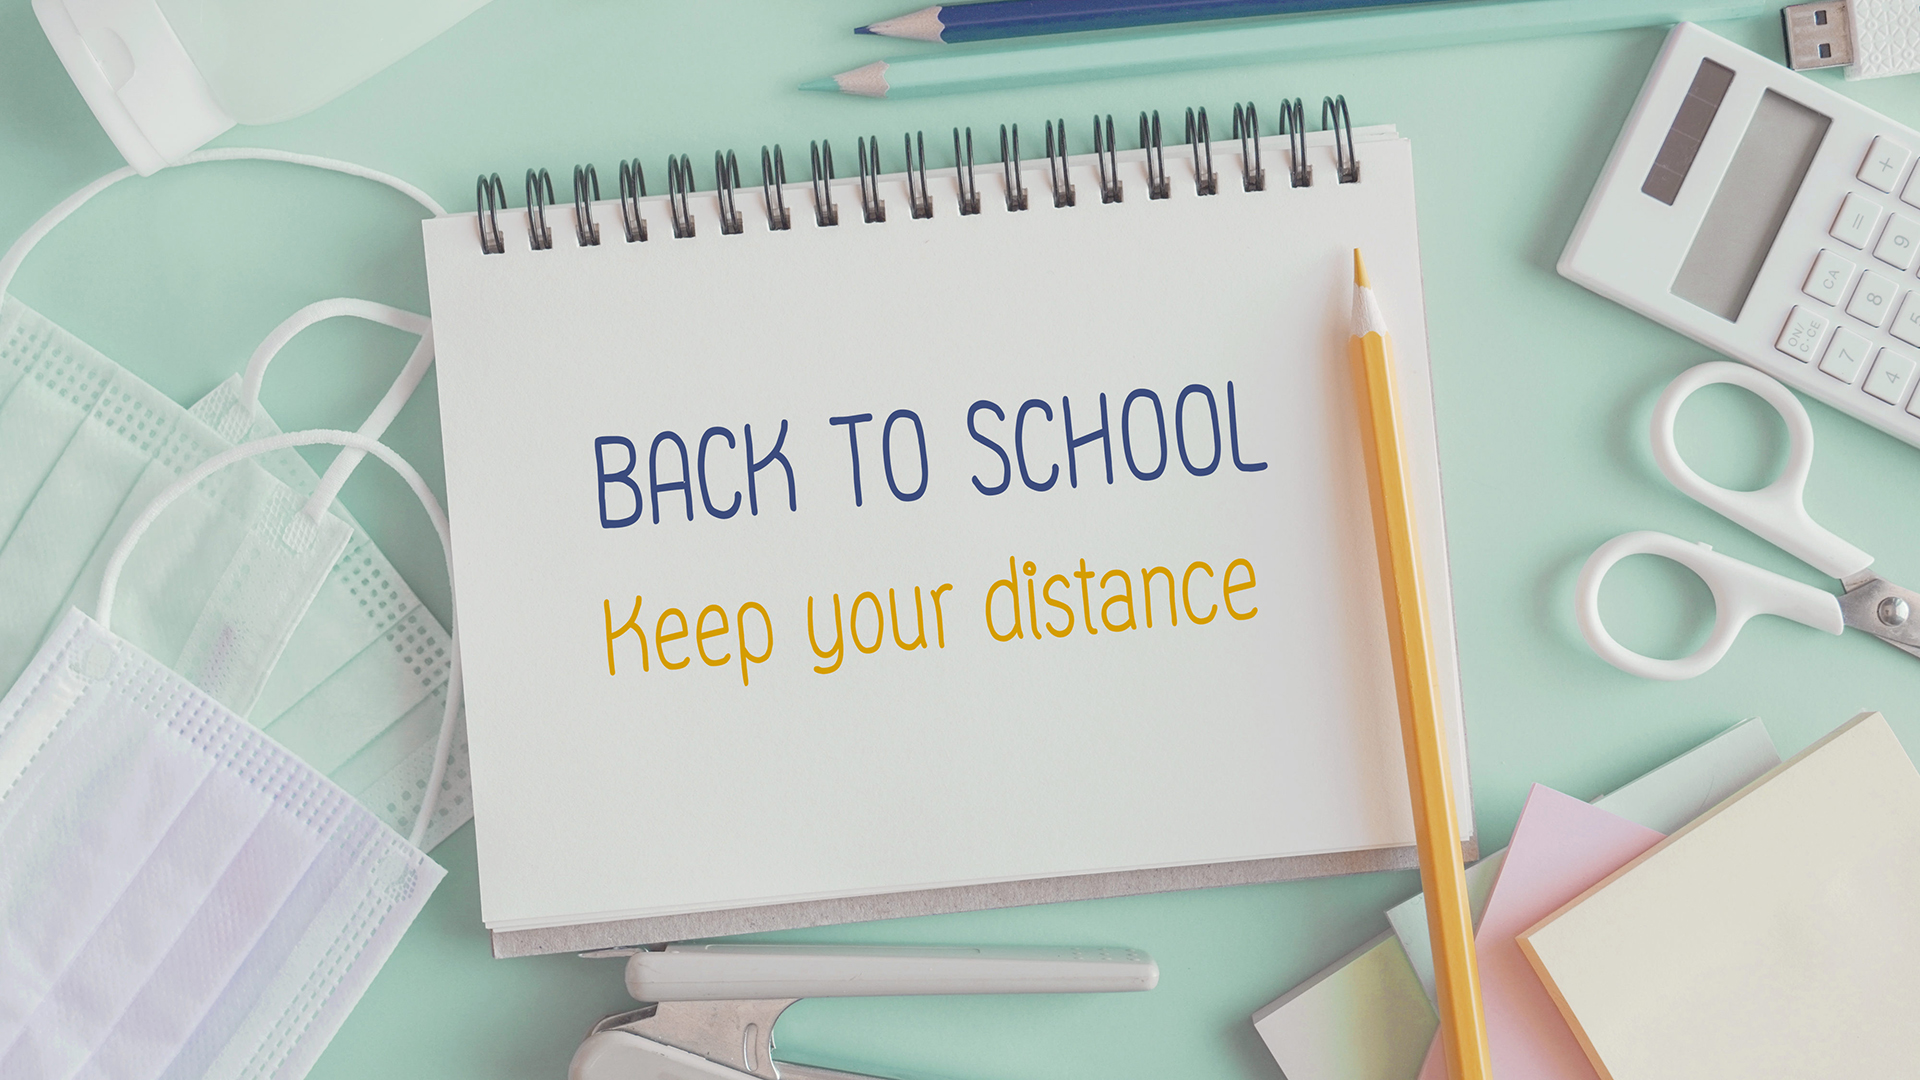 Back To School Graphic Message for Digital Signage Communications